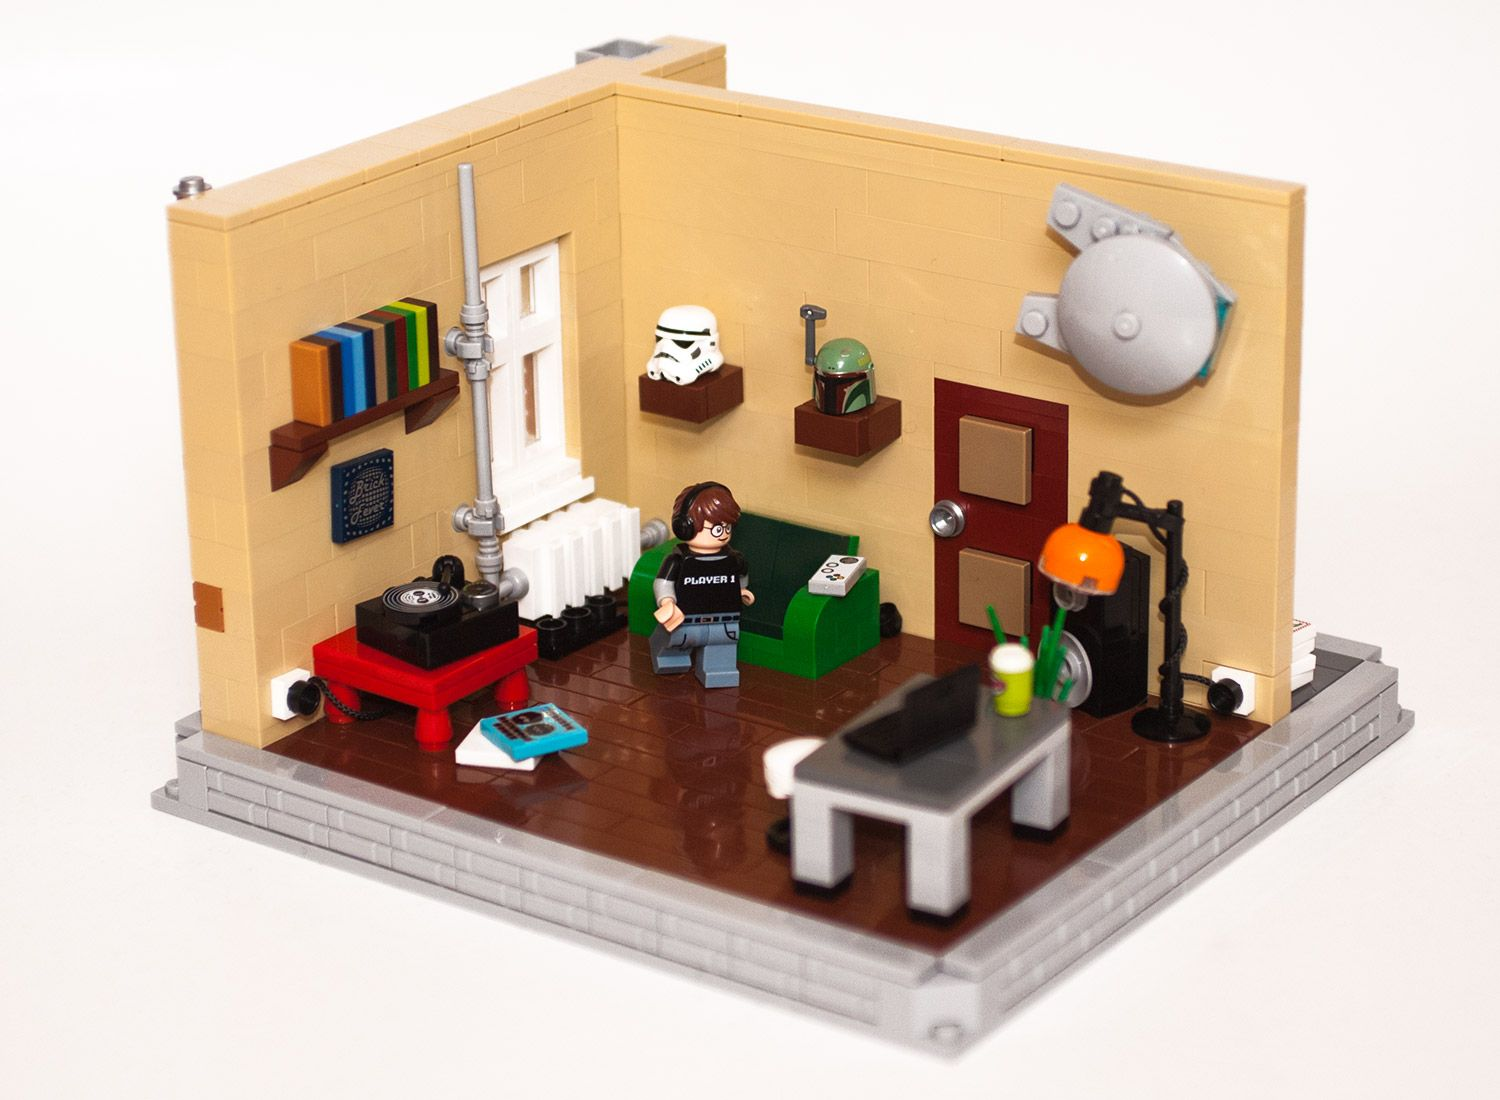 Lego Küche Bauen The Gamer Series 12 Mini Mocs I Made With Characters From The